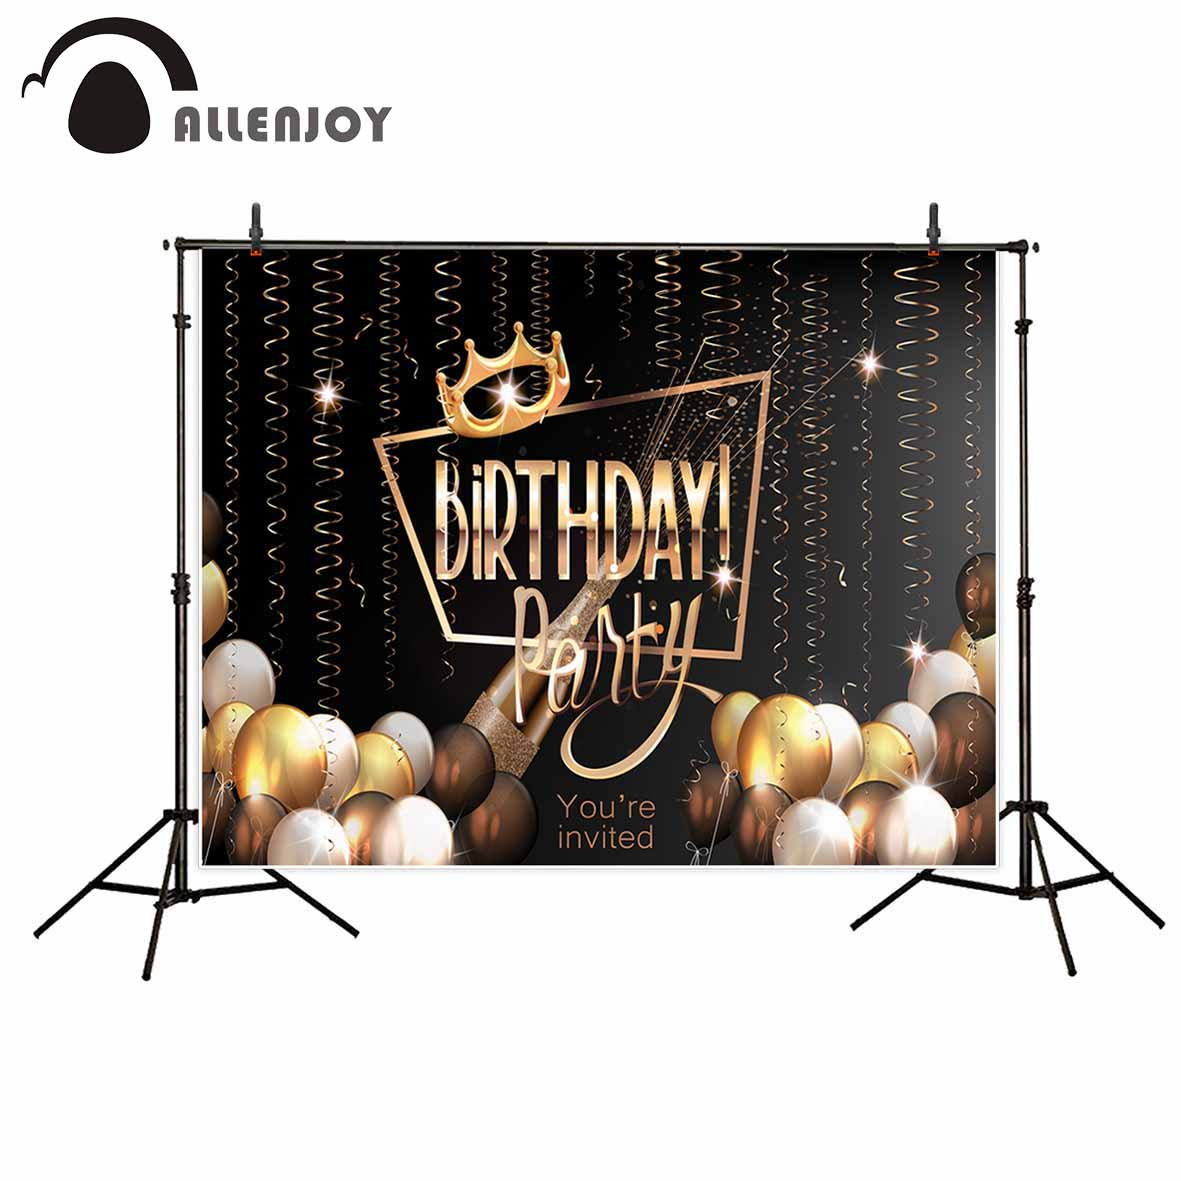 Allenjoy vinyl photographic background Ball Ribbon Birthday Crown Custom Party new backdrop photocall photo printed customize photographic studio background white clouds blue dinette chinese style new born professional xmas photocall background pictures